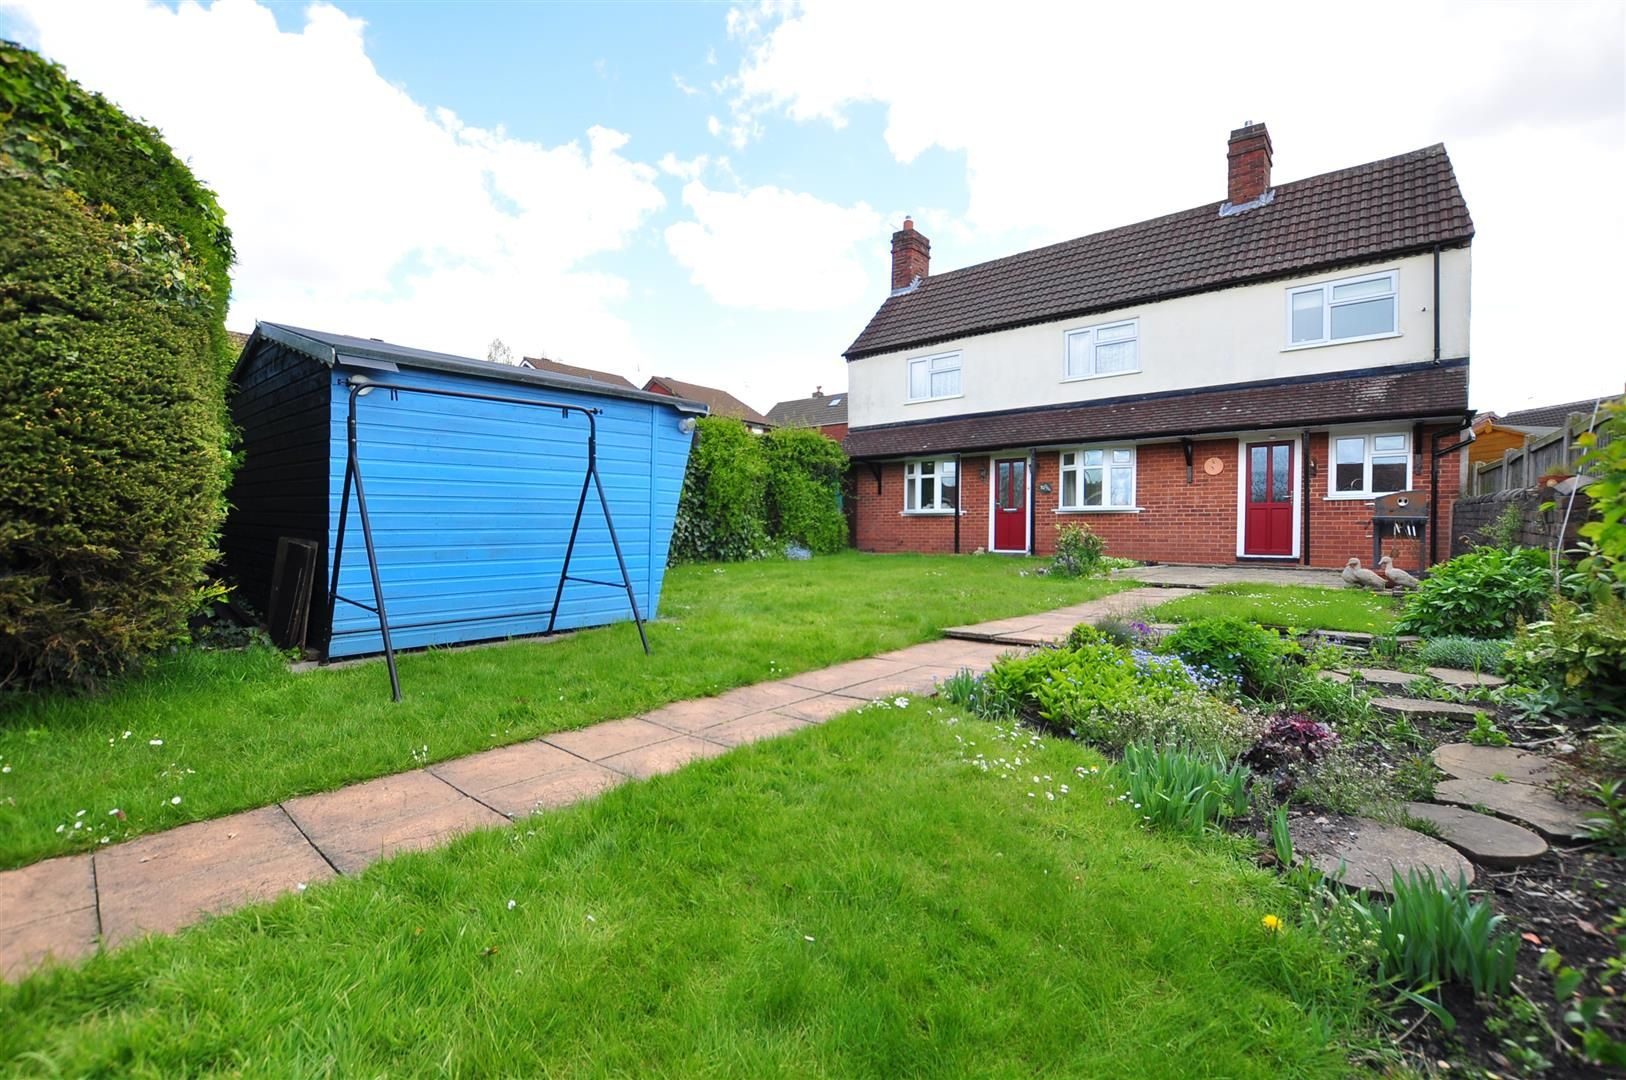 2 bed detached for sale 14